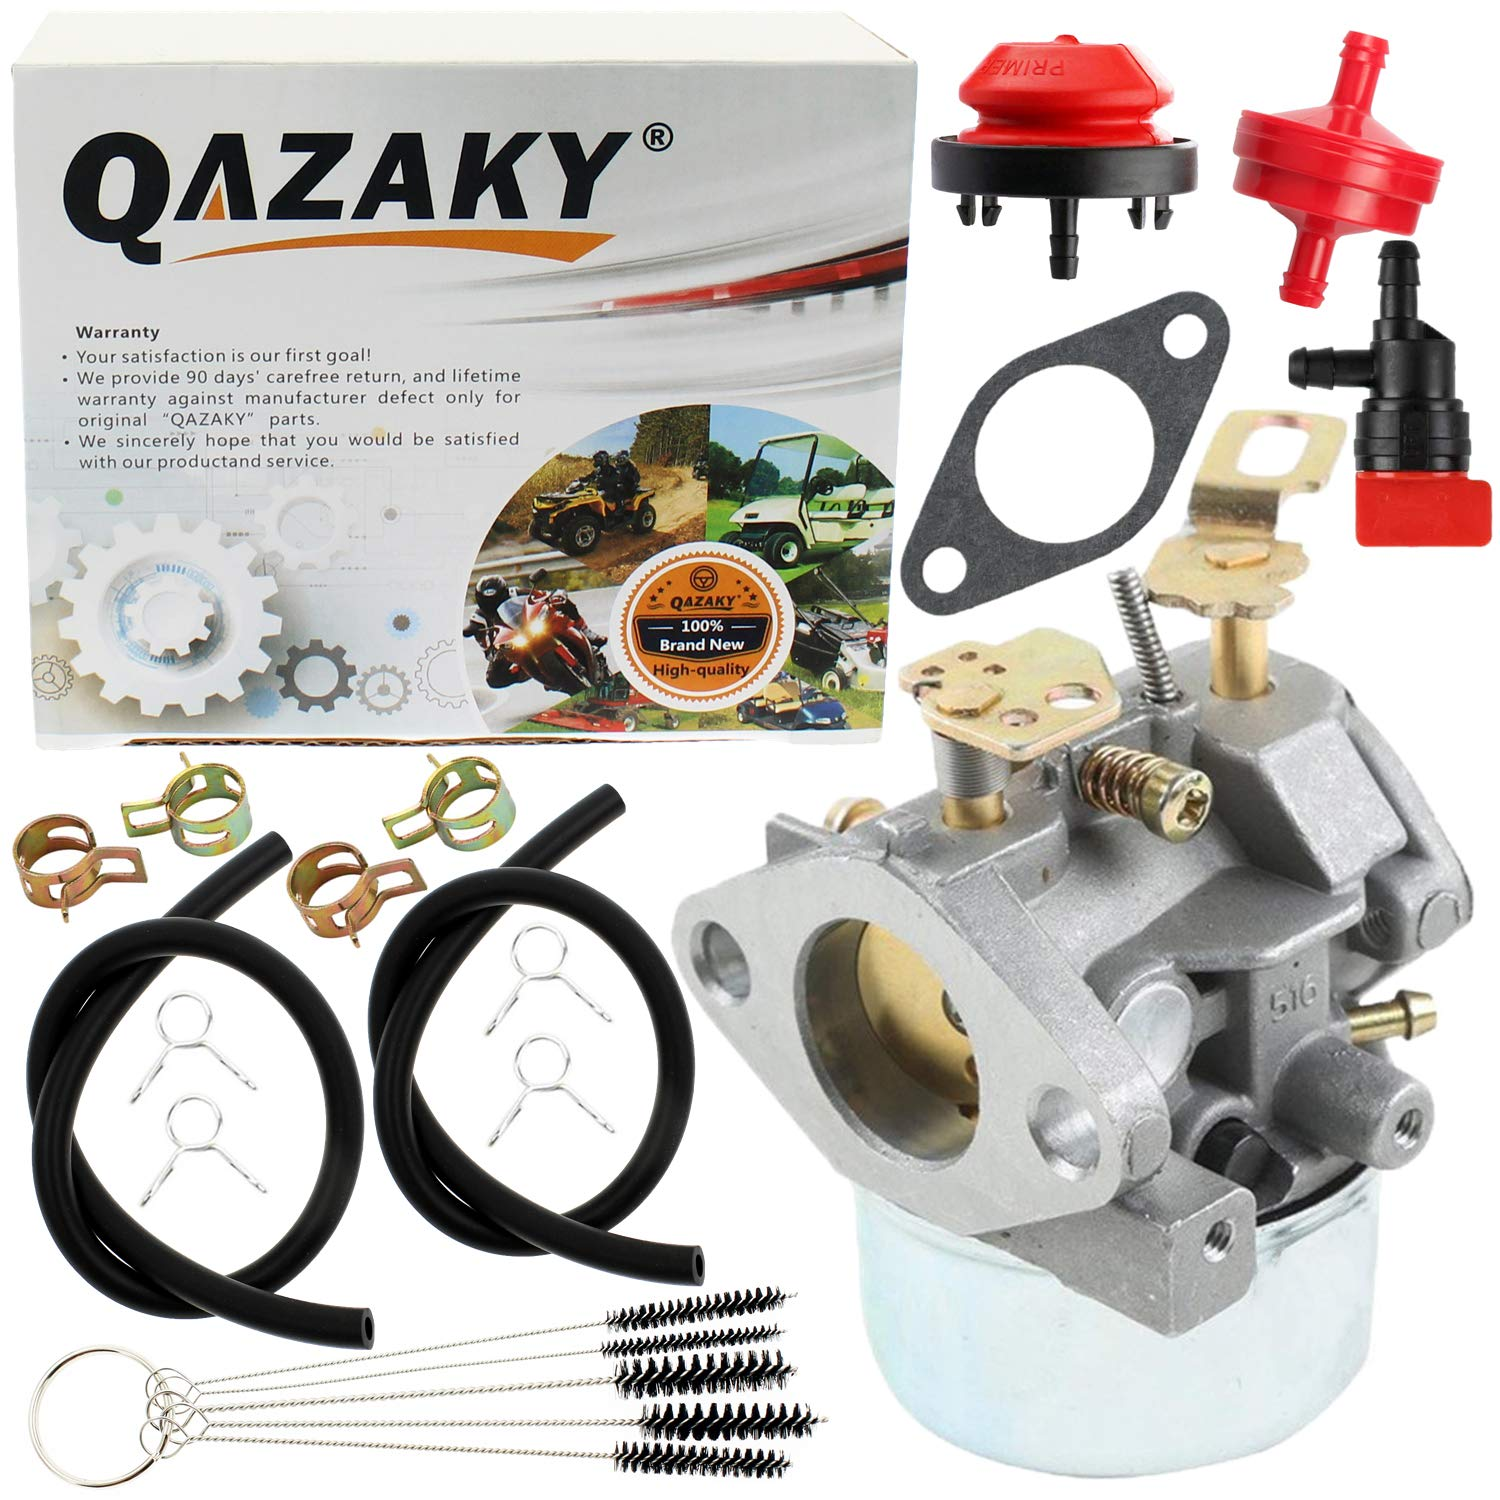 QAZAKY Carburetor Replacement for Tecumseh 640349 640052 640054 640058 640058A HMSK80 HMSK85 HMSK90 HMSK100 HSMK110 LH318A LH358SA 8HP 9HP 10HP Snowblower Generator Chipper Shredder Carb 50659 520926 by QAZAKY